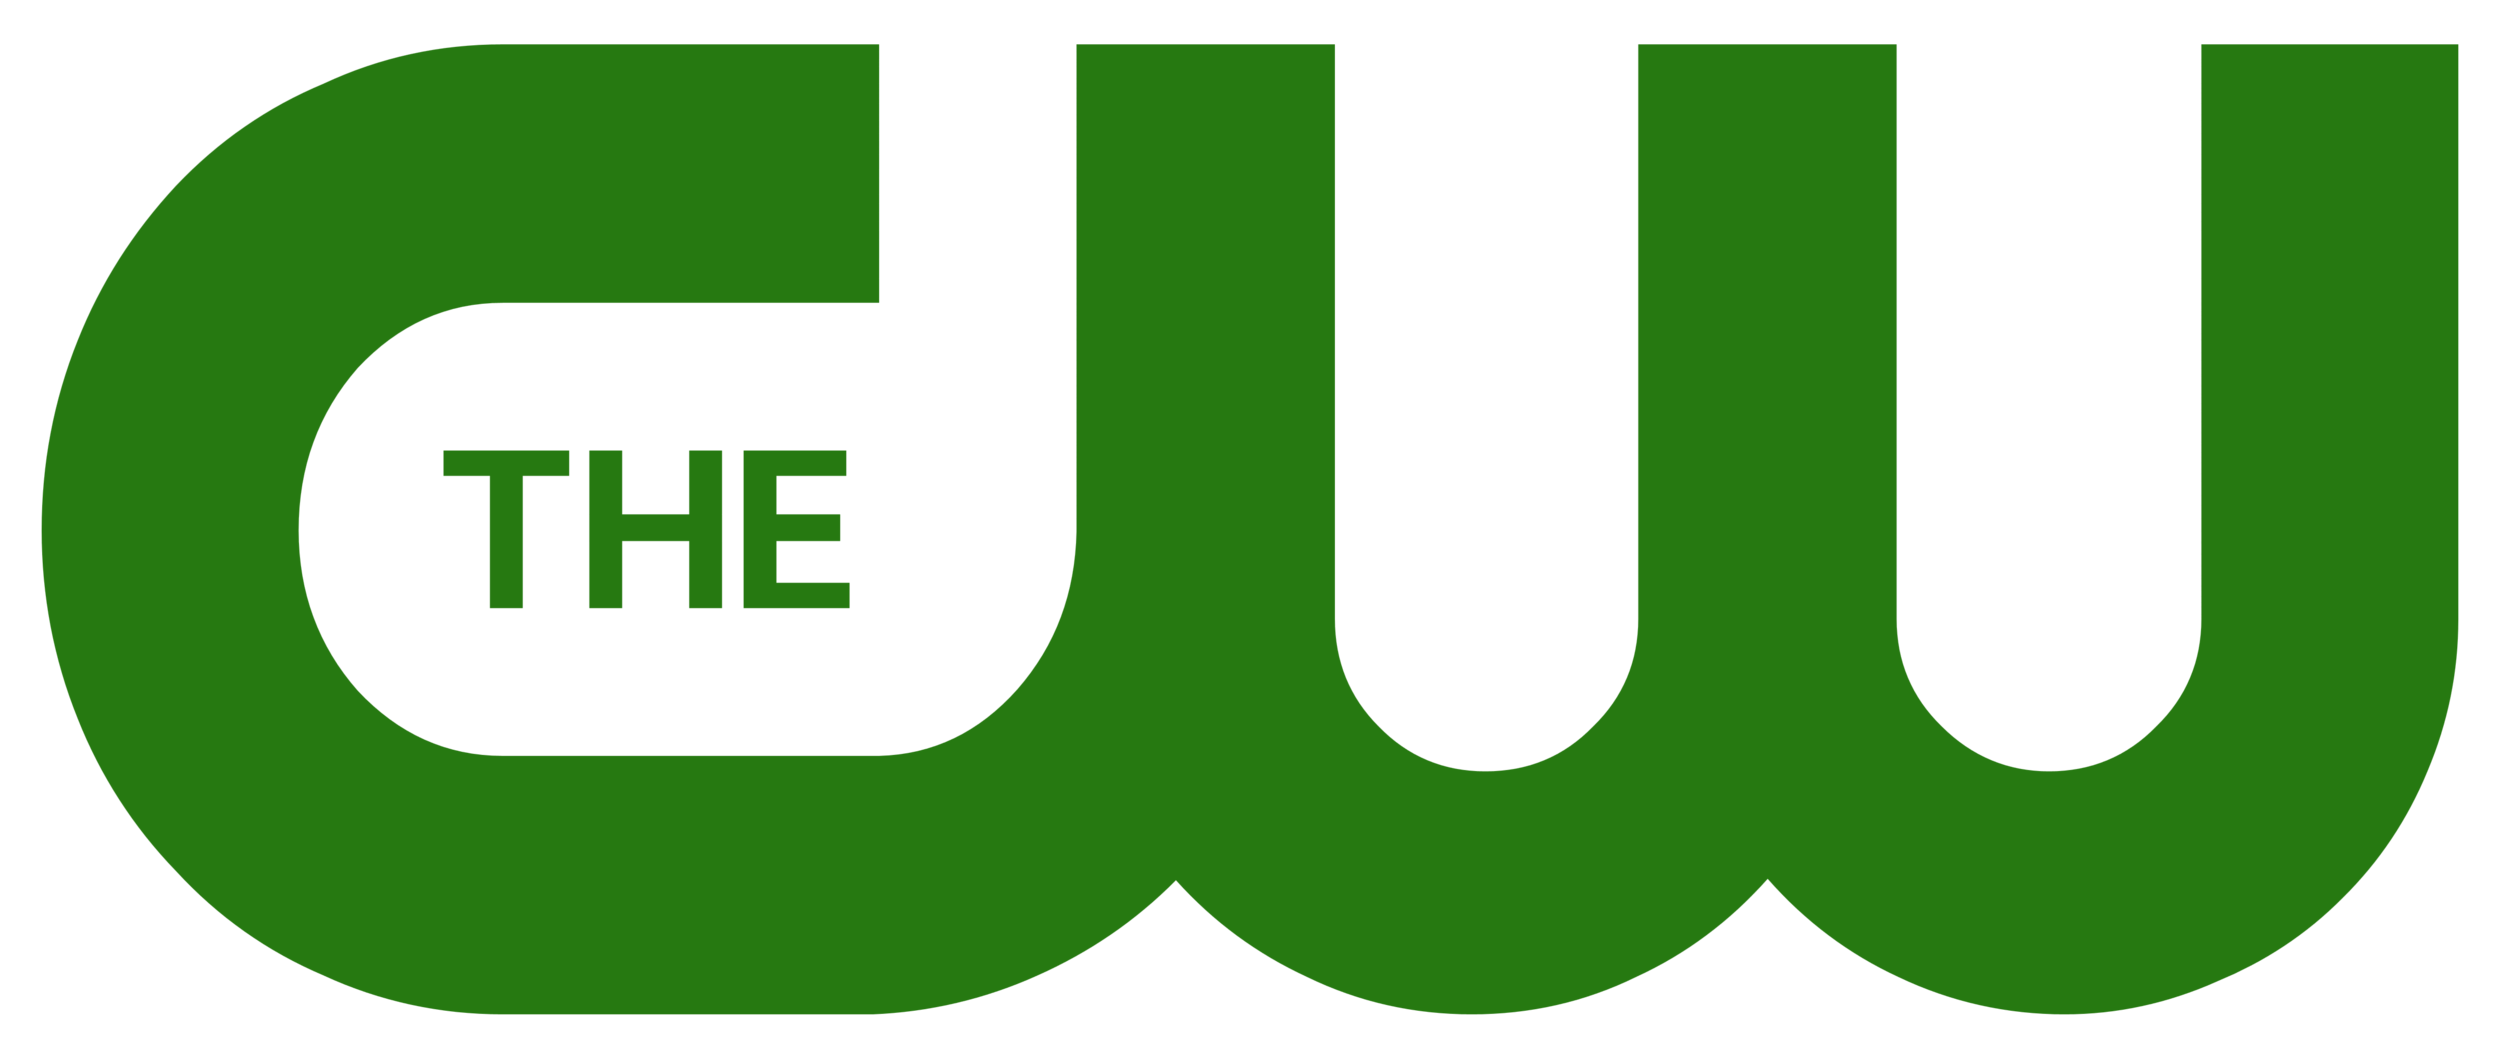 The_CW_logo_4800x2000.png